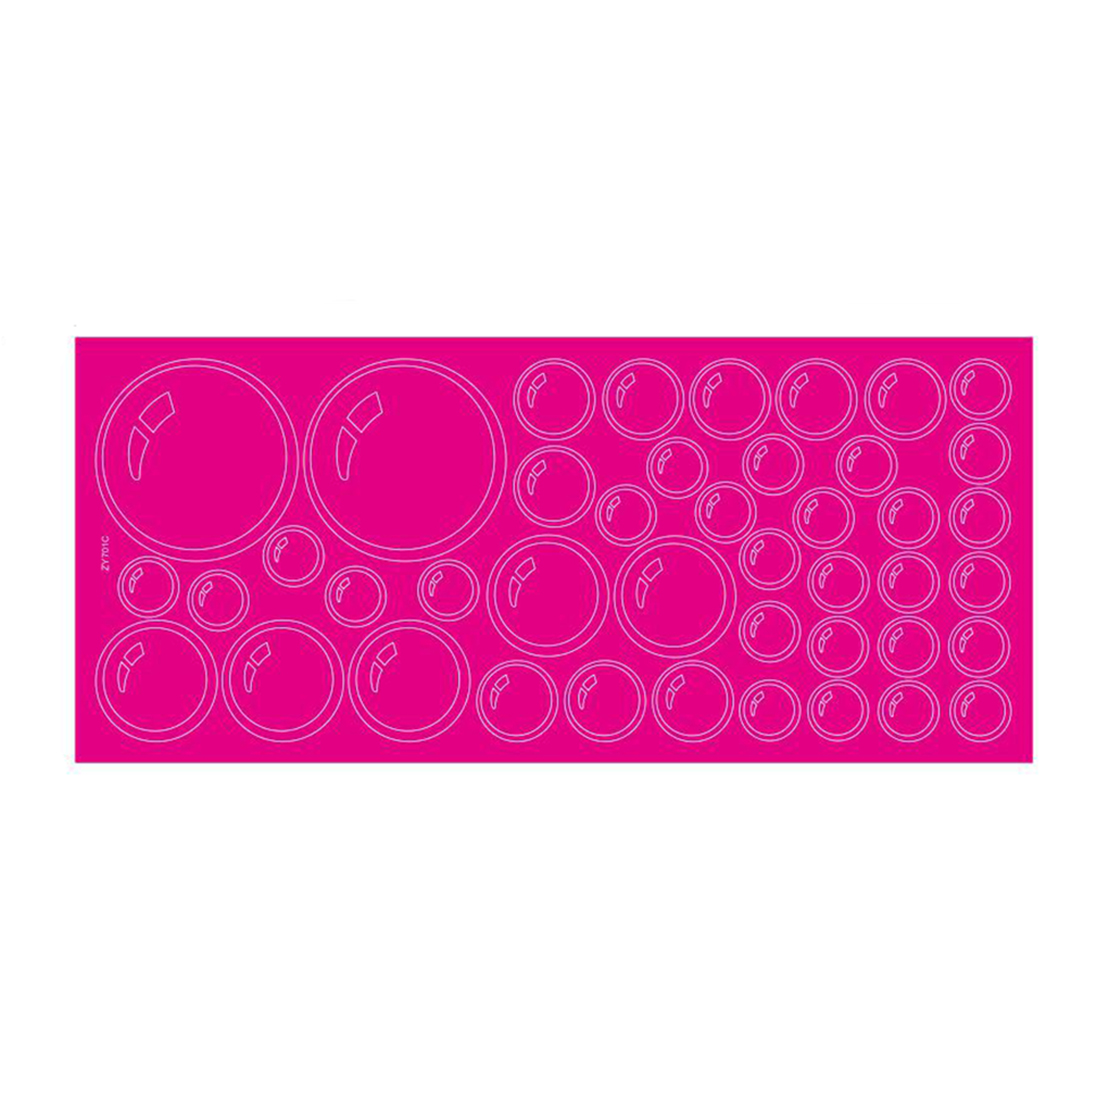 Bubbles Pattern Bathroom Wall Stickers Decals Room Decor Fuchsia